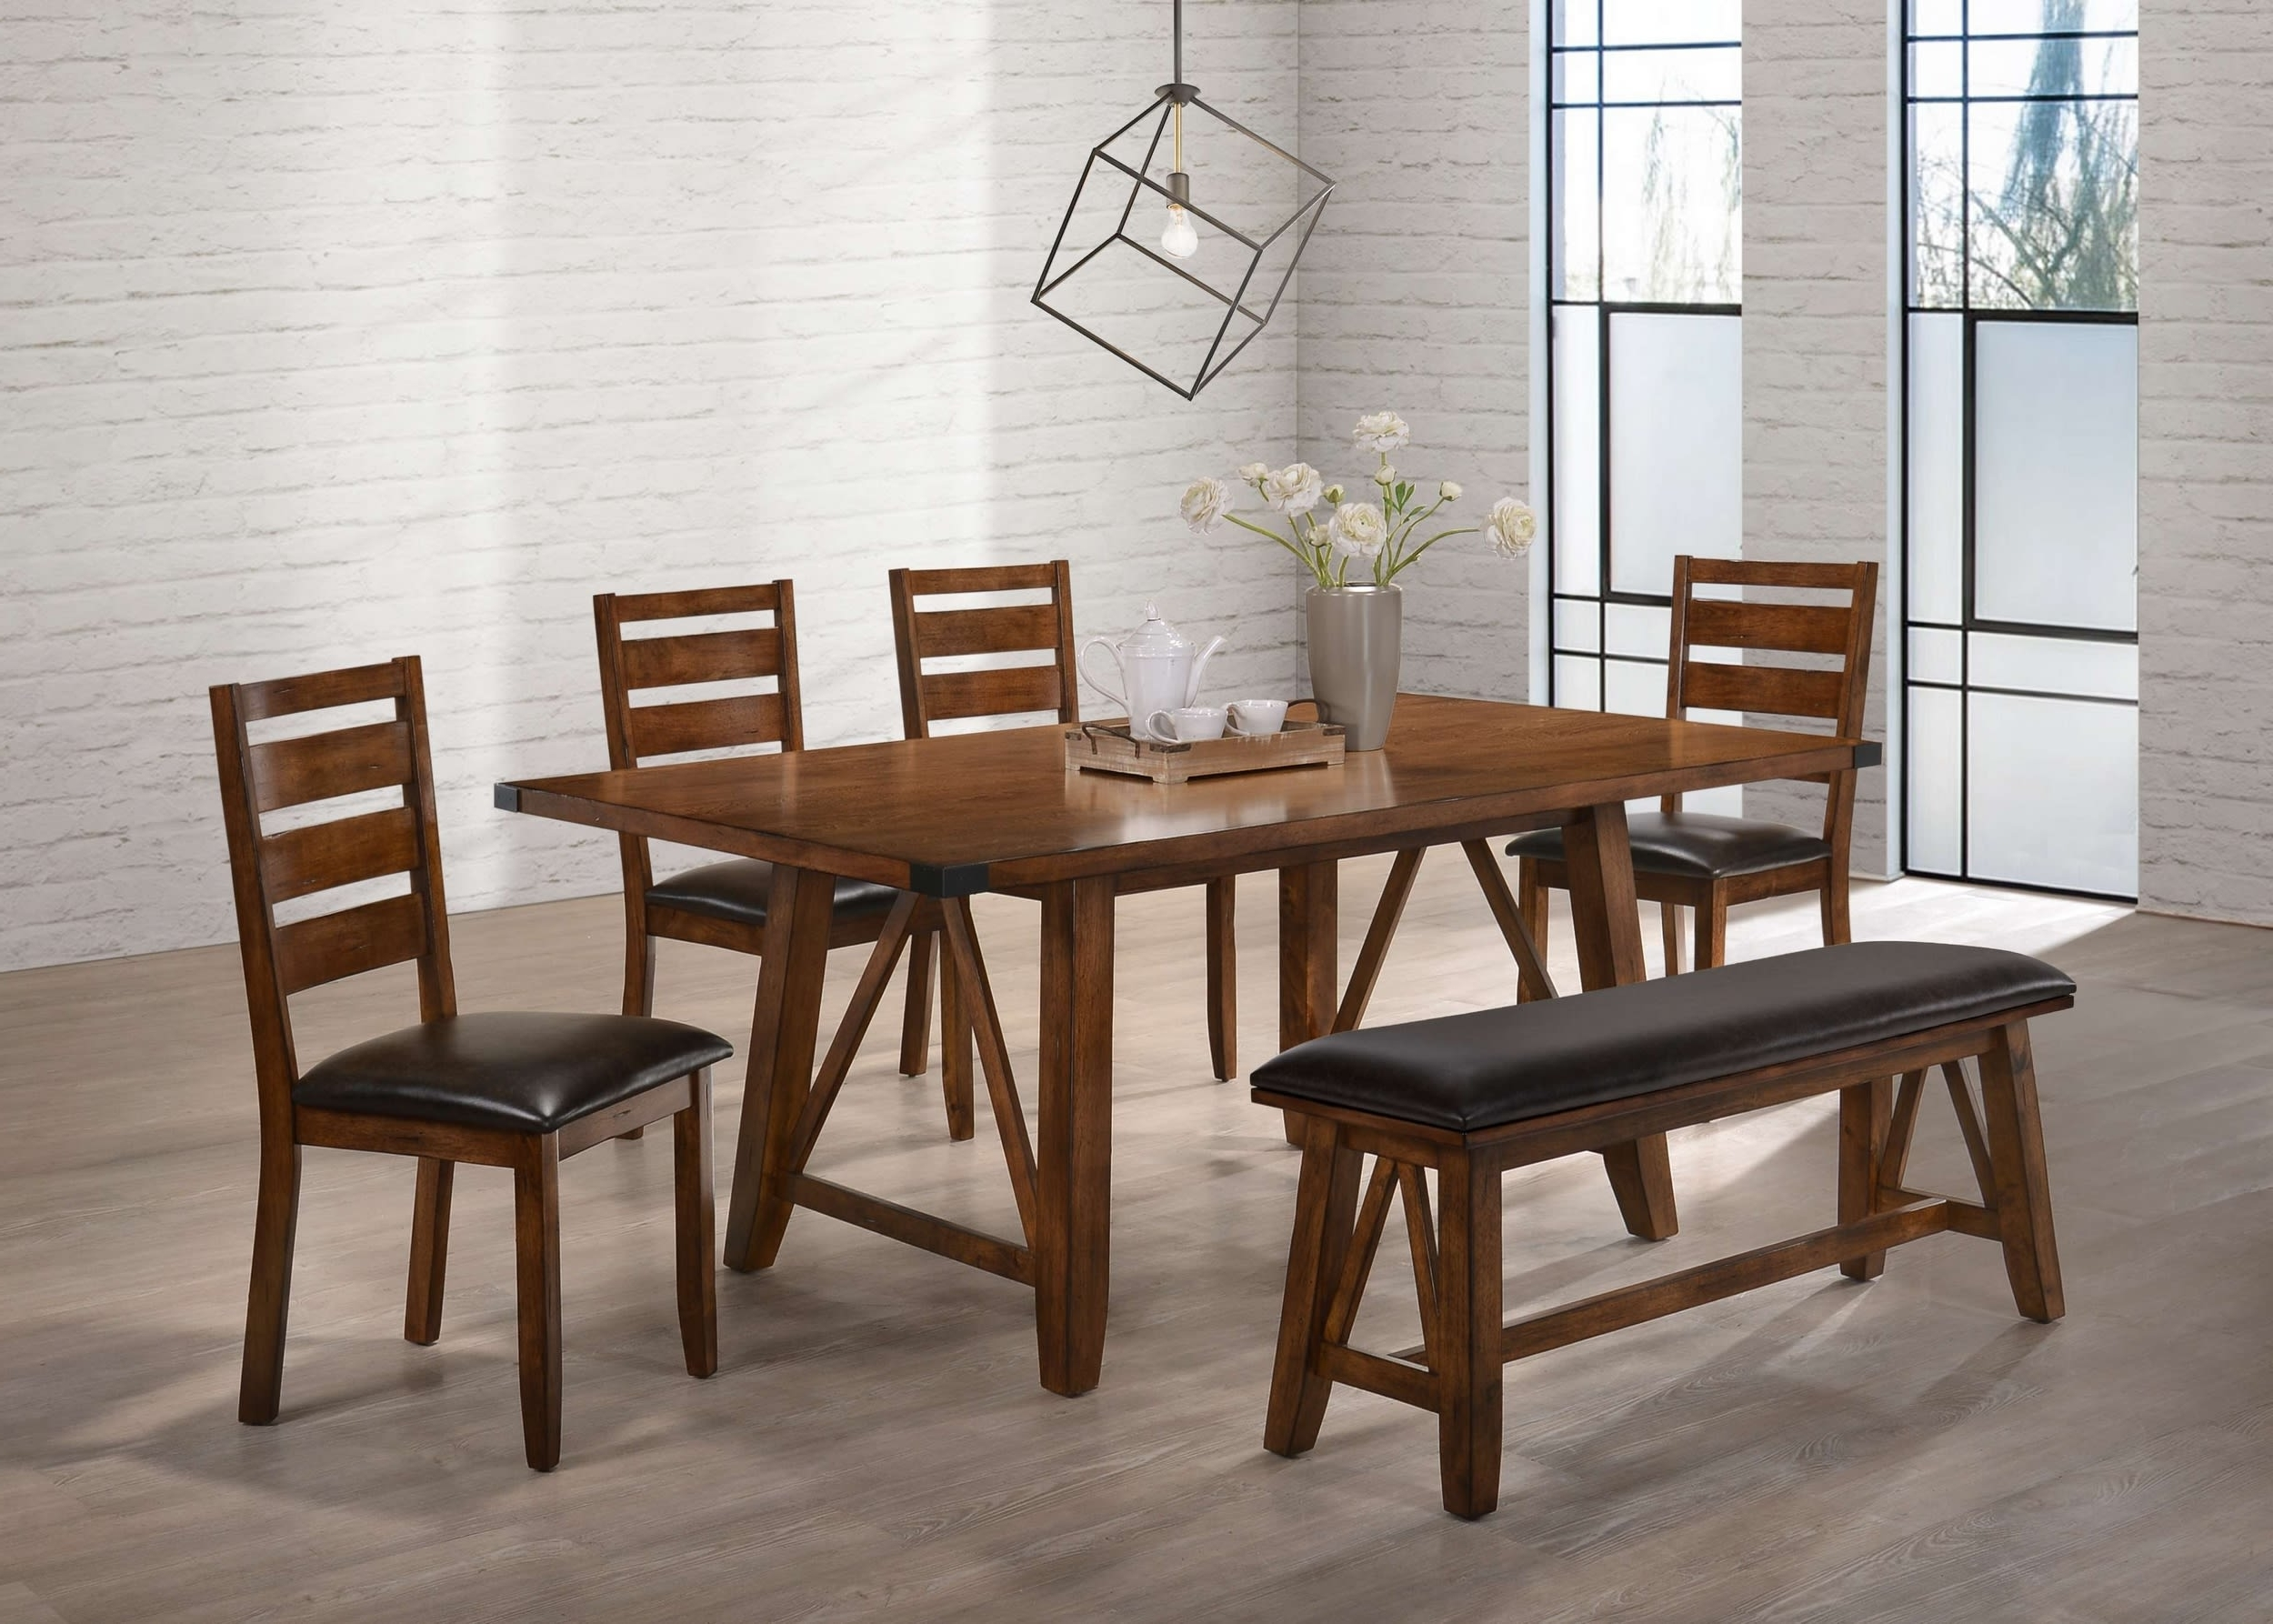 Simmons Upholstery 5022 72, 5022 51, 5022 52, 5022 52 Logan Valsp Intended For Most Popular Logan 6 Piece Dining Sets (View 22 of 25)